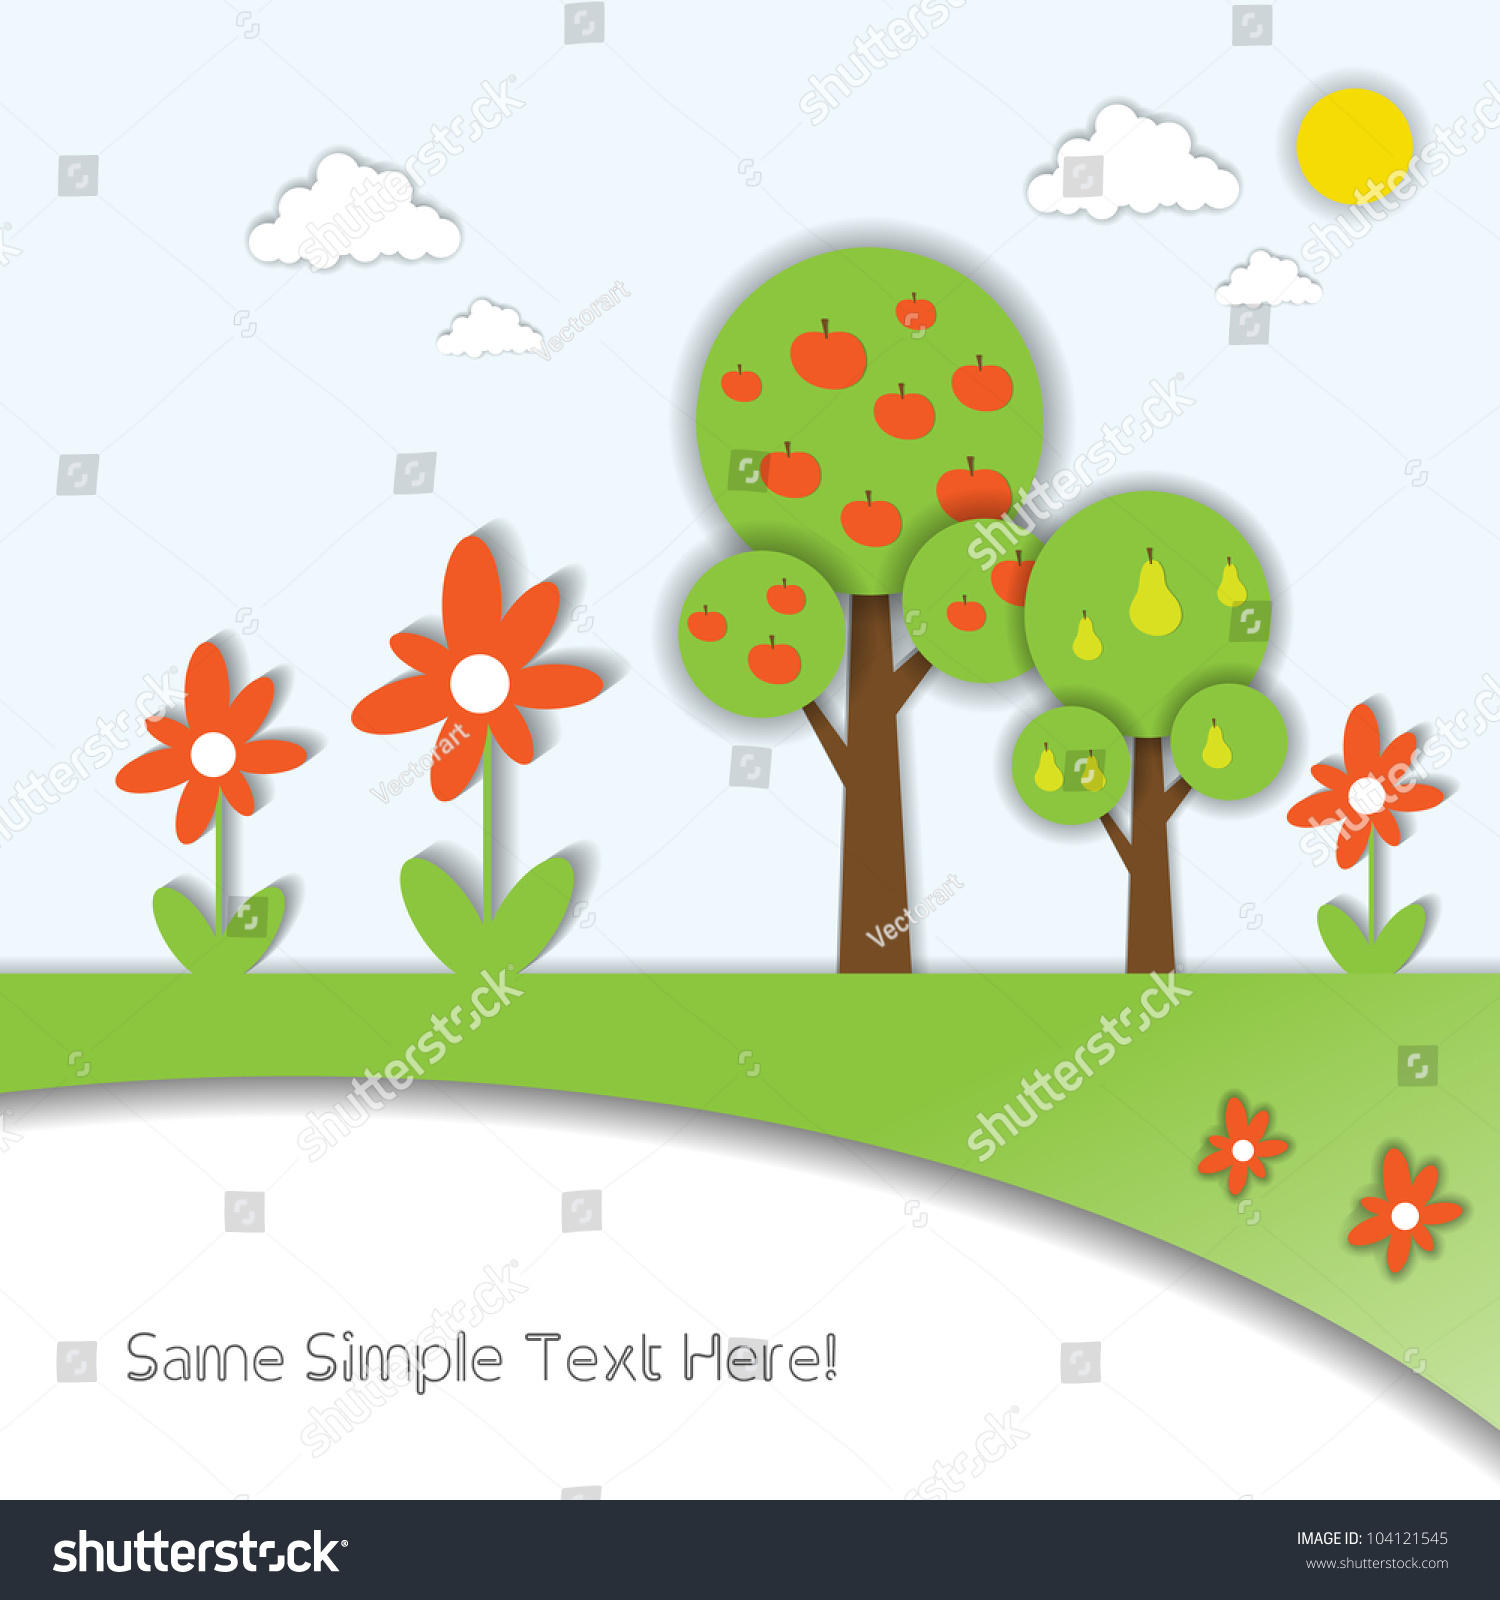 3 D Eco Bio Web Set Art Stock Vector 104121545 - Shutterstock